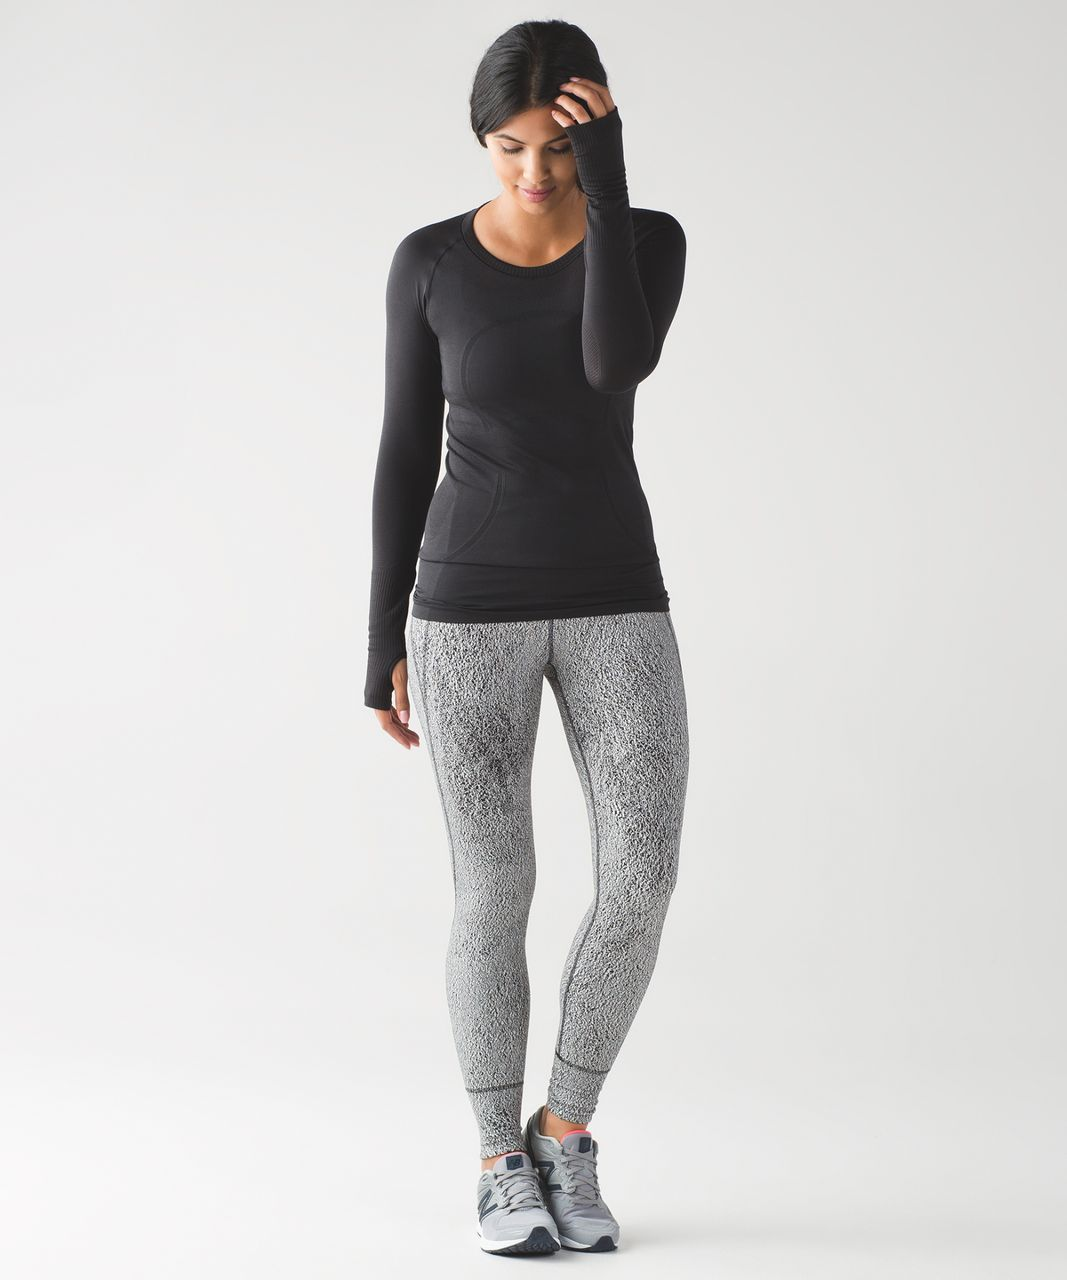 b3cfb9694 Lululemon Rush Hour Tight - Running Luon Spray Jacquard White Black ...